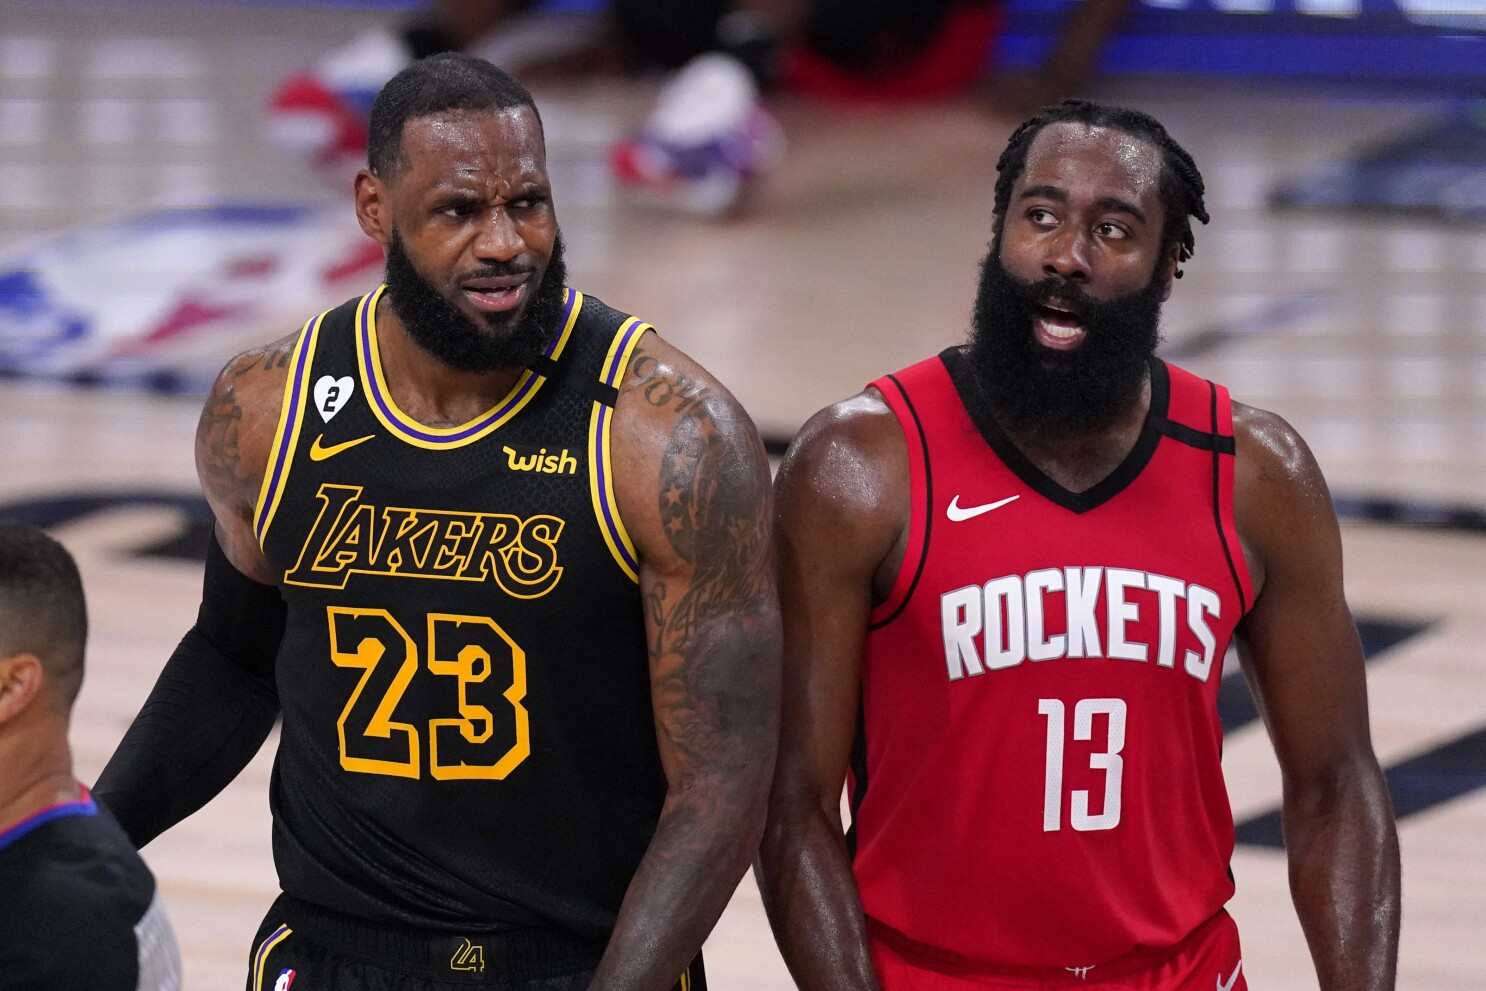 Lebron James Big Fourth Quarter Helps Lakers Beat Rockets Los Angeles Times